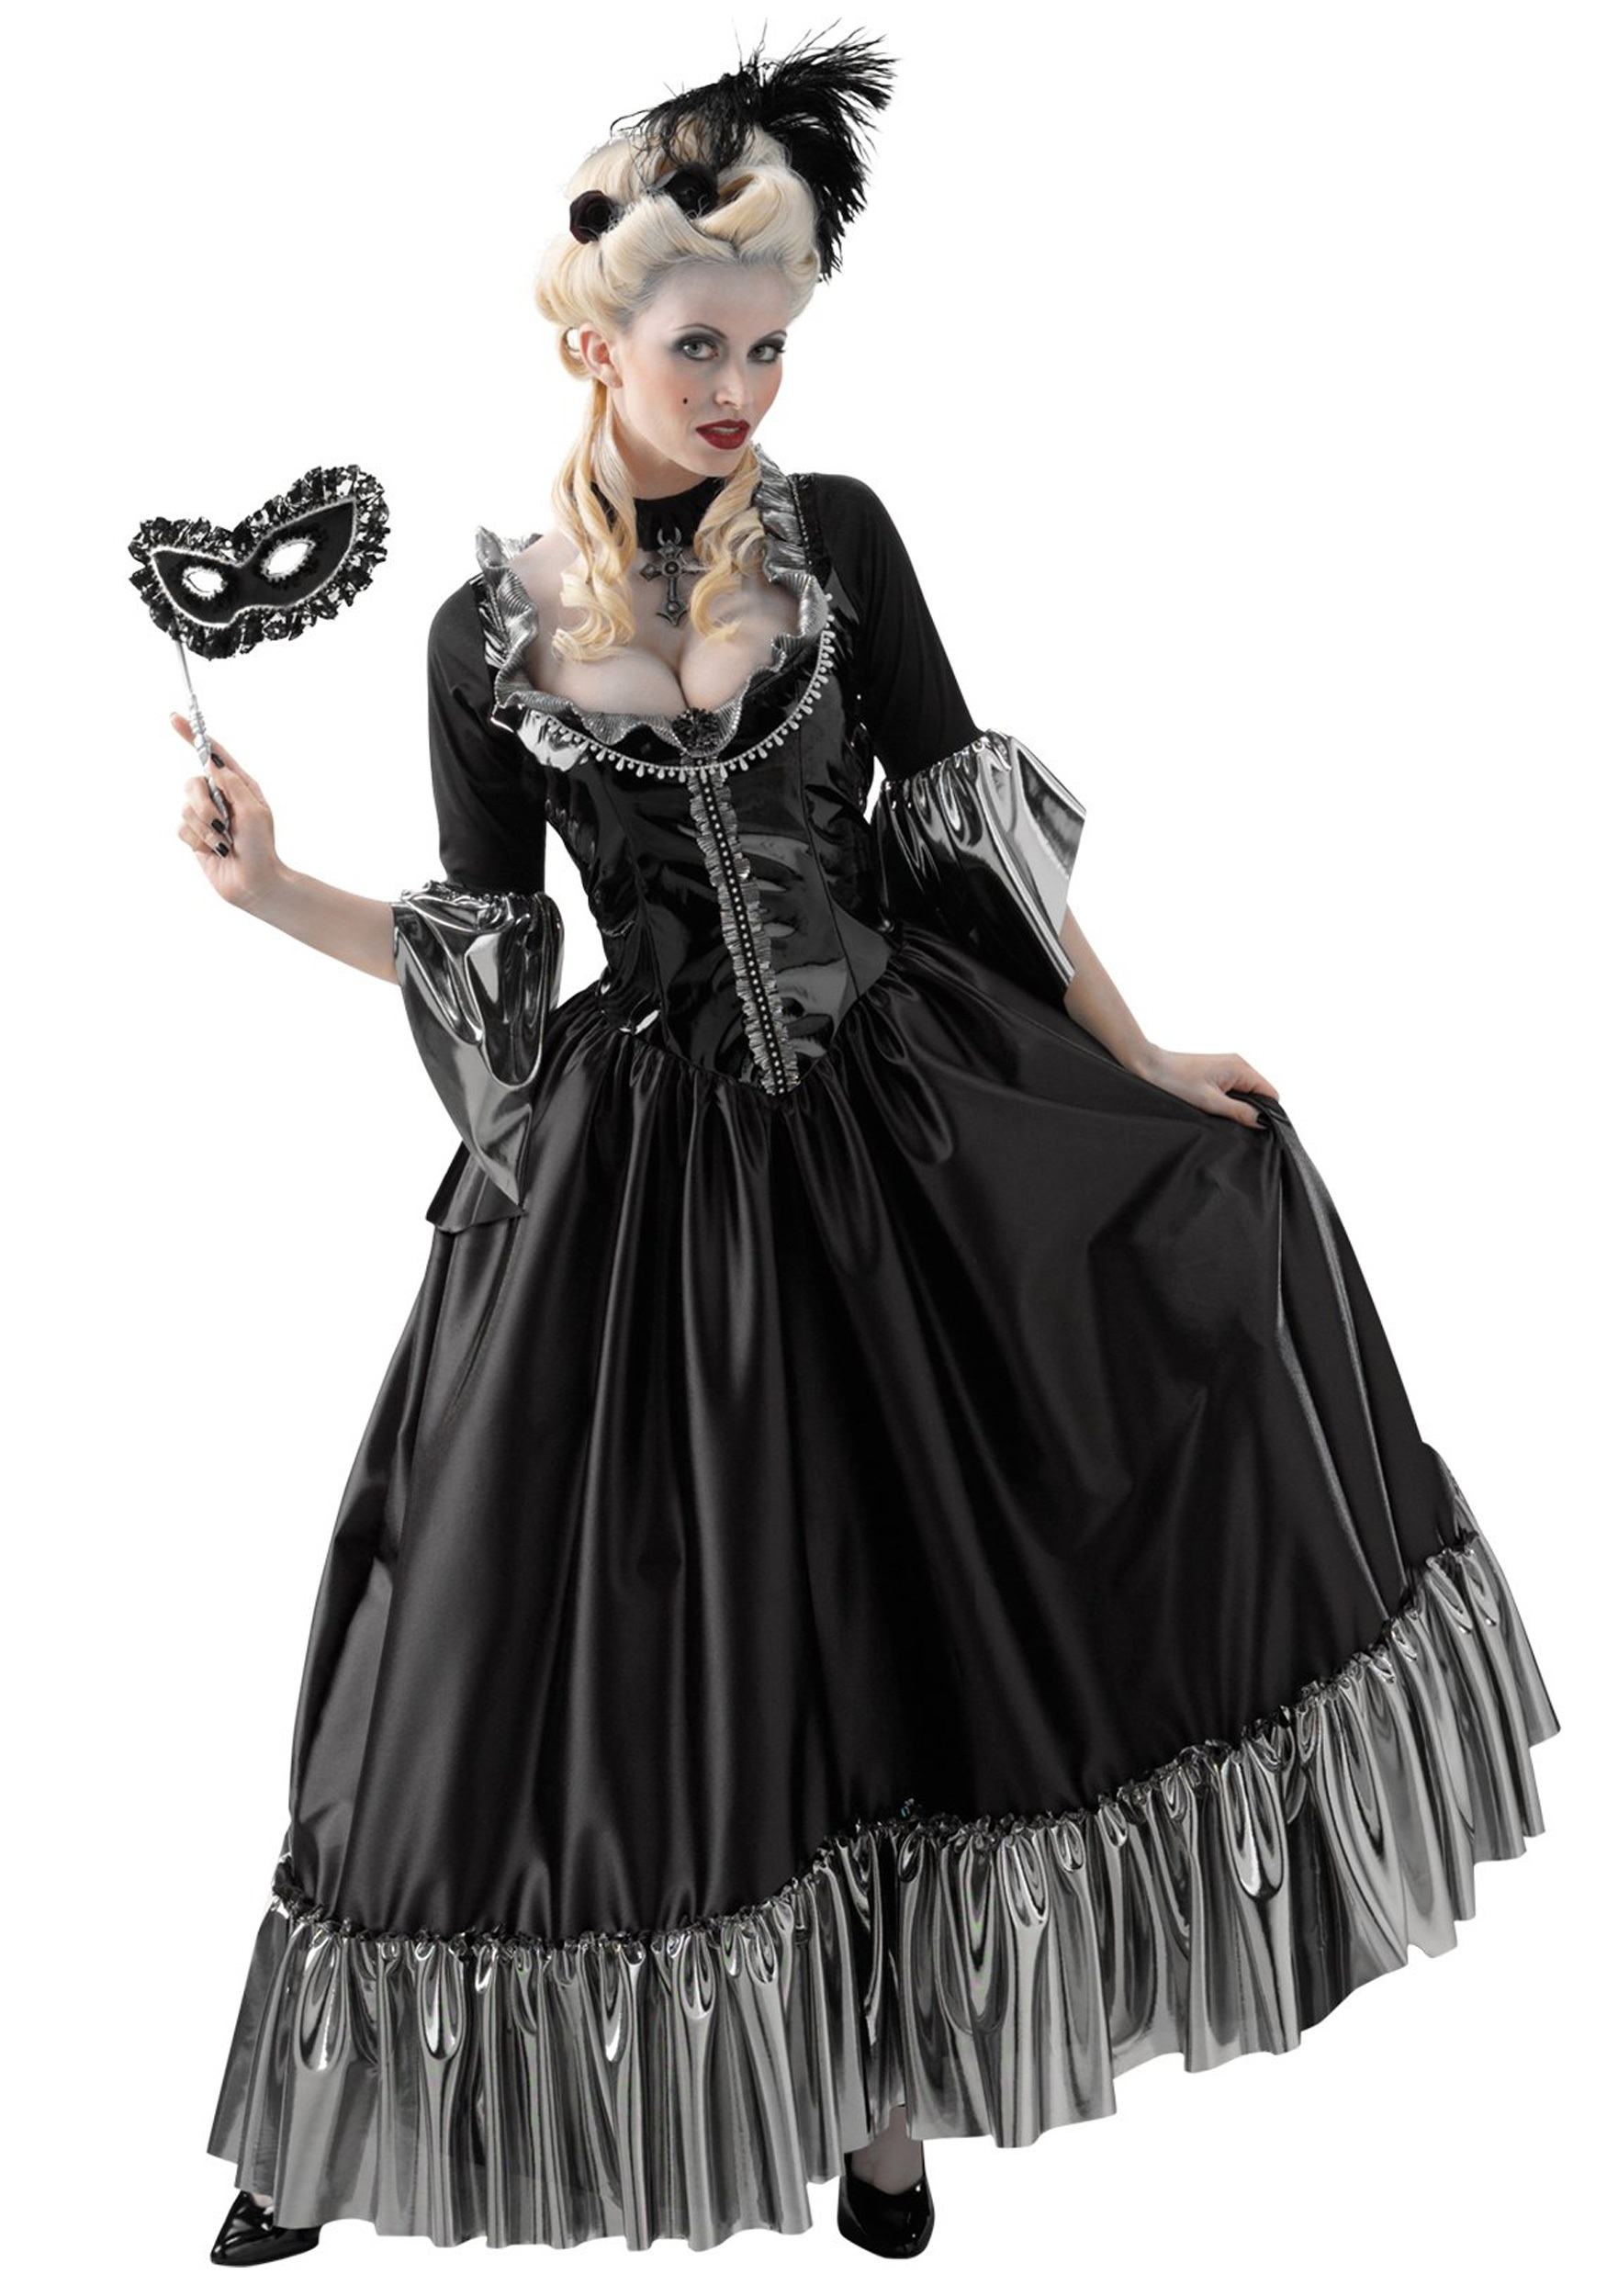 Masquerade Ball Costume  sc 1 st  Halloween Costumes : victorian clown costume  - Germanpascual.Com